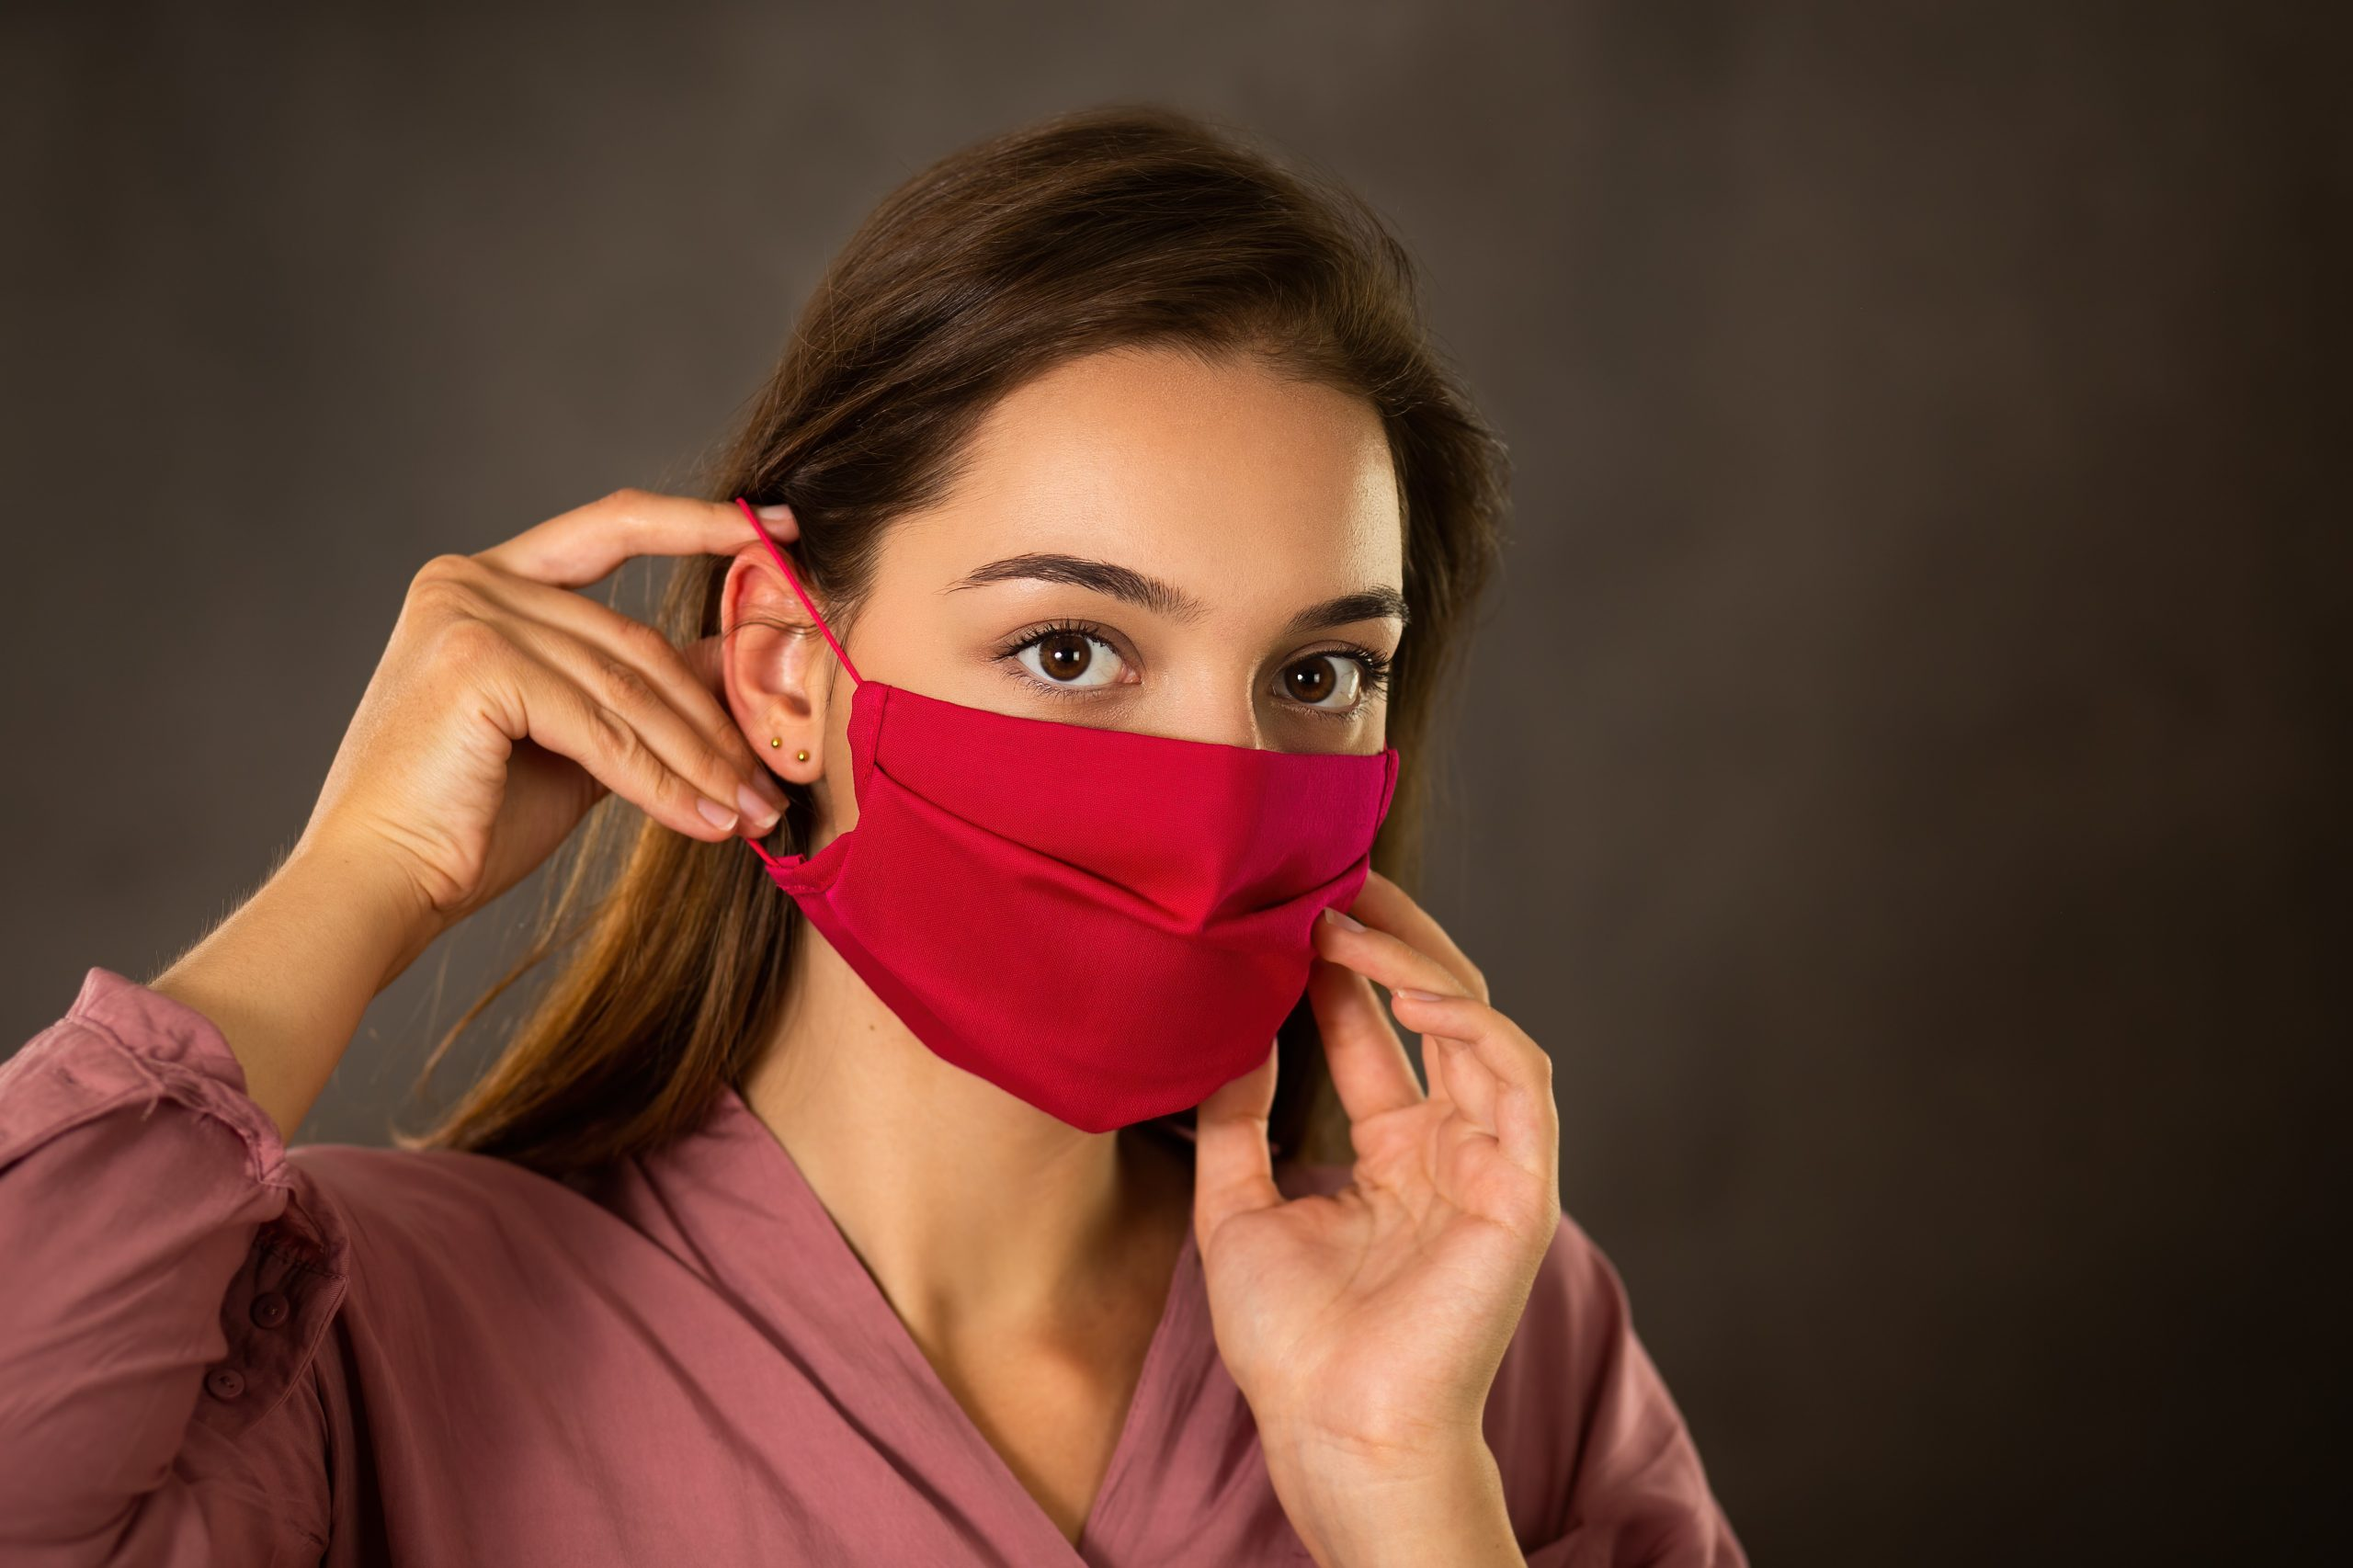 woman-attaching-red-cloth-face-mask-on-ear